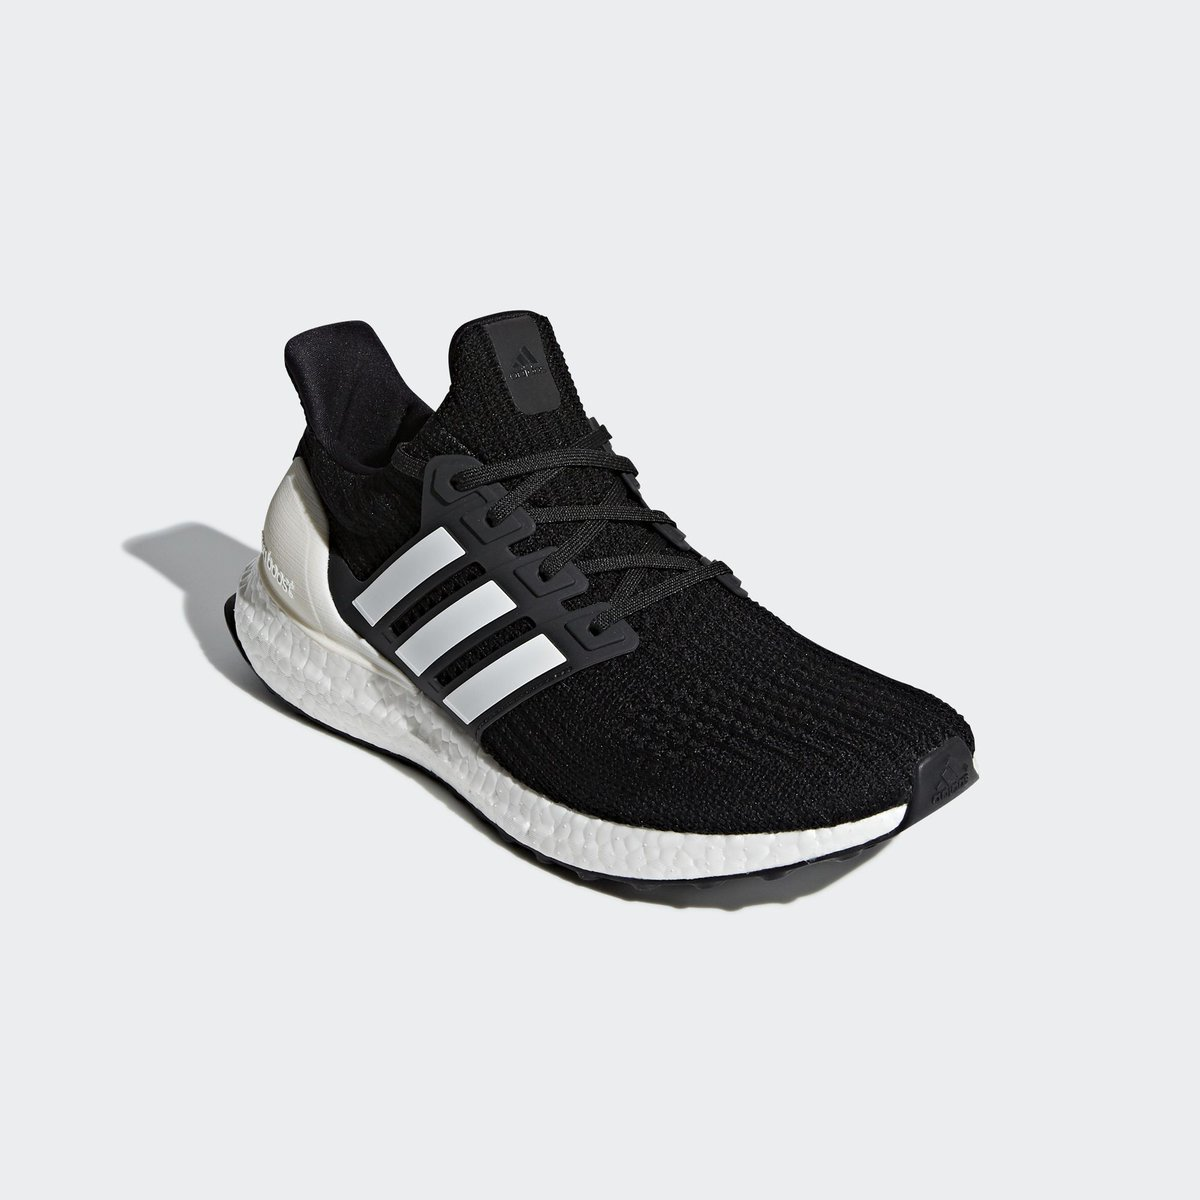 8fe7a33cd4f49 adidas alerts on Twitter